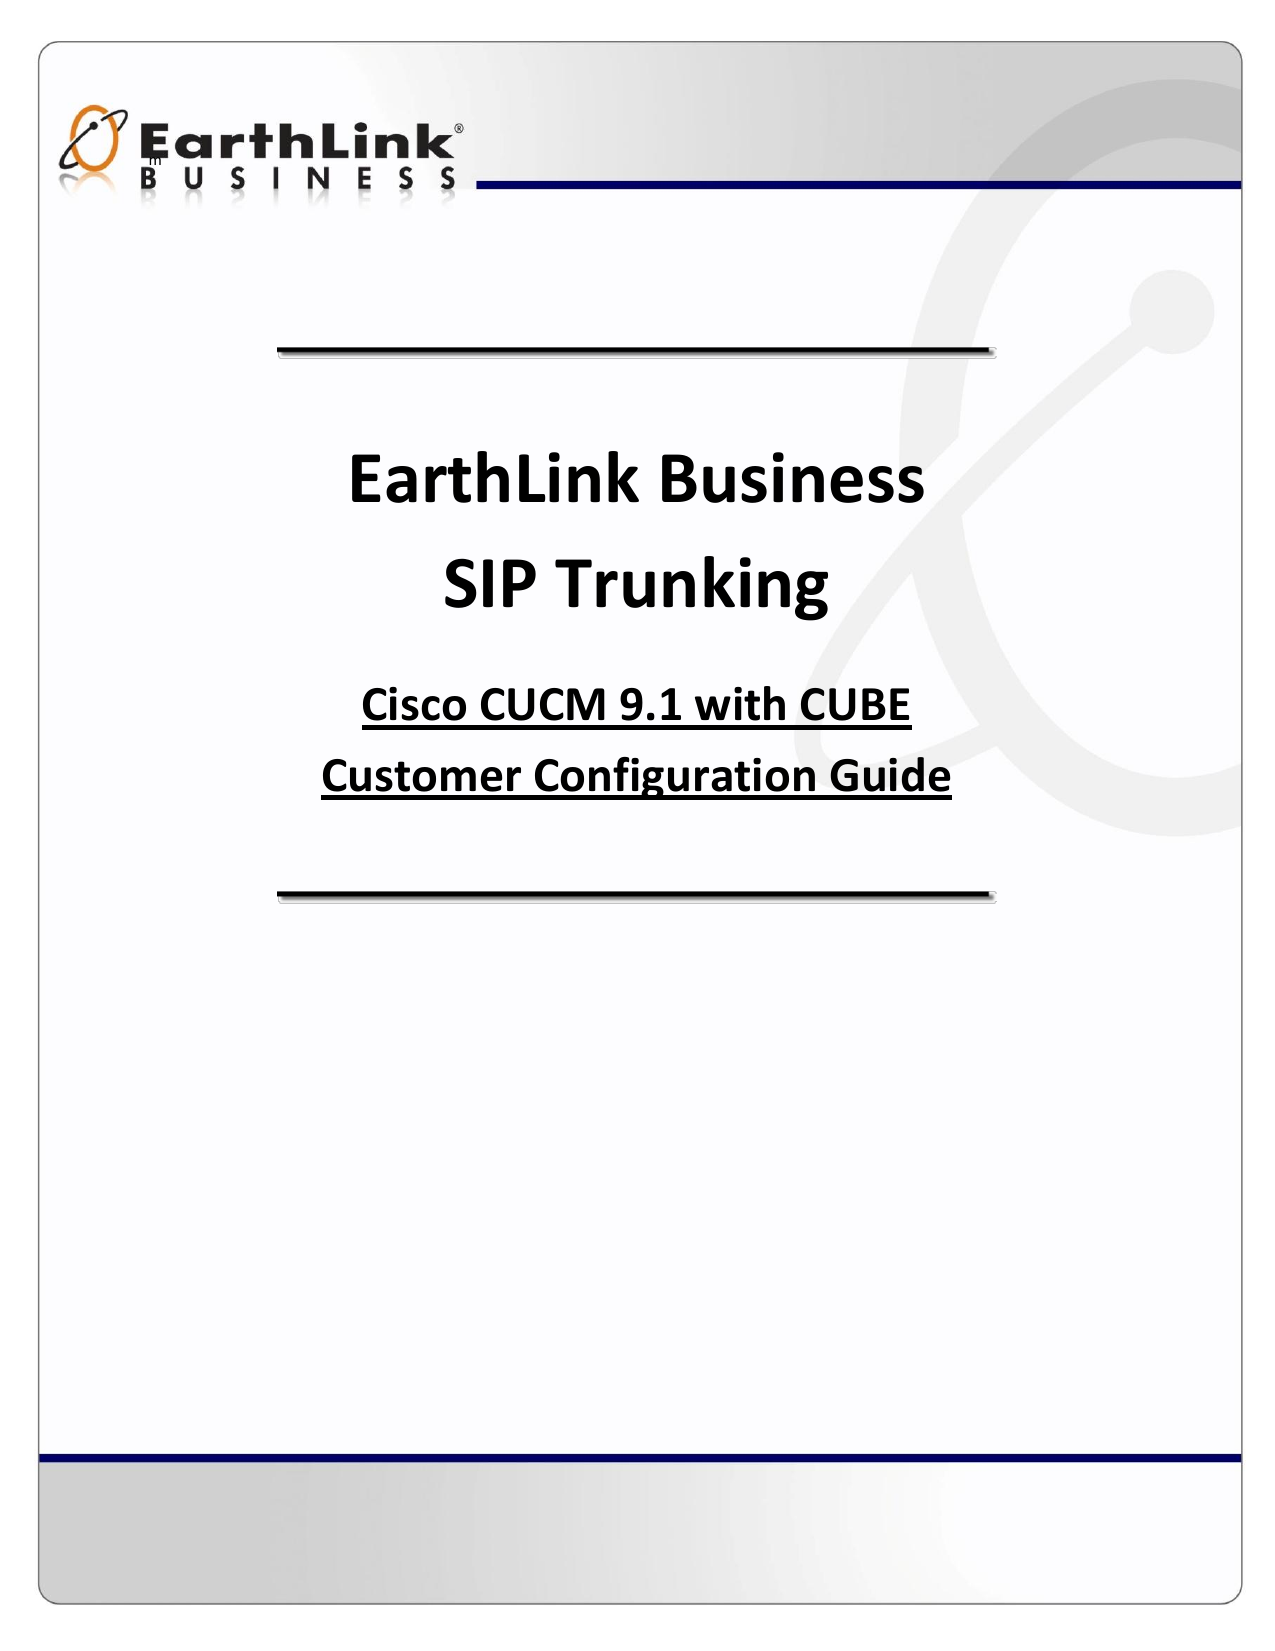 EarthLink Business SIP Trunking